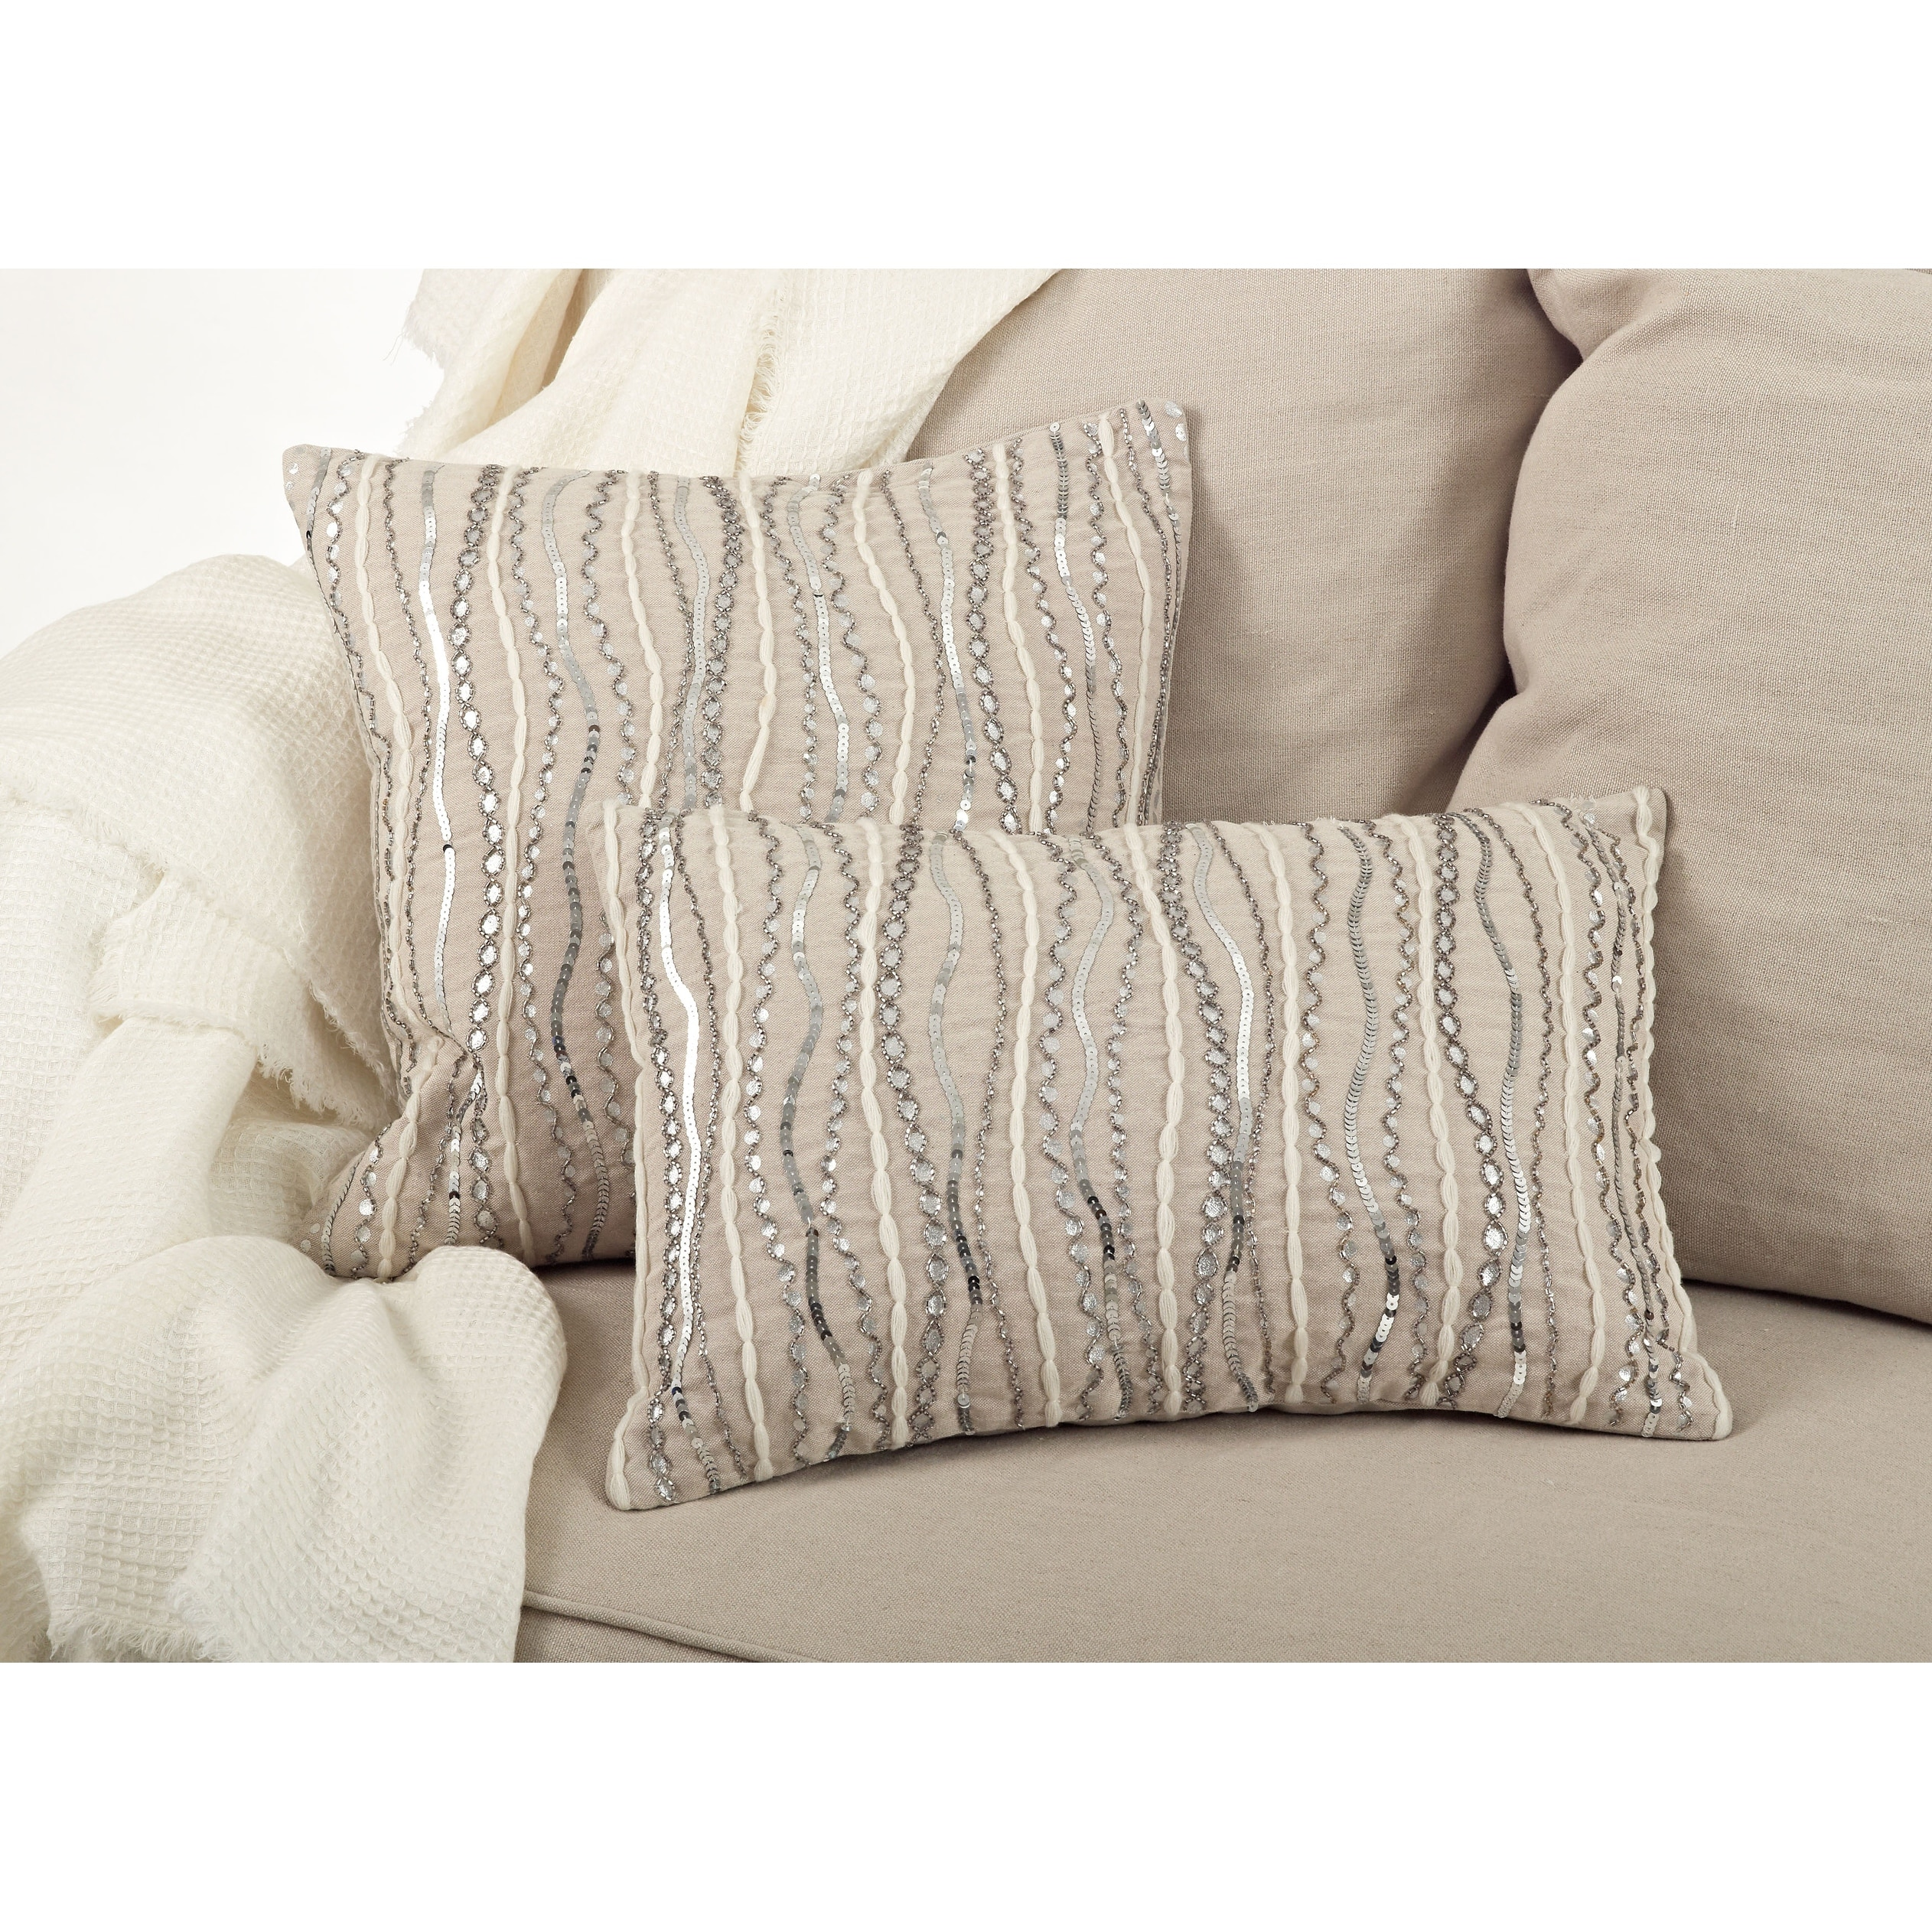 Cotton Pillow Cover With Beaded Design Overstock 31912101